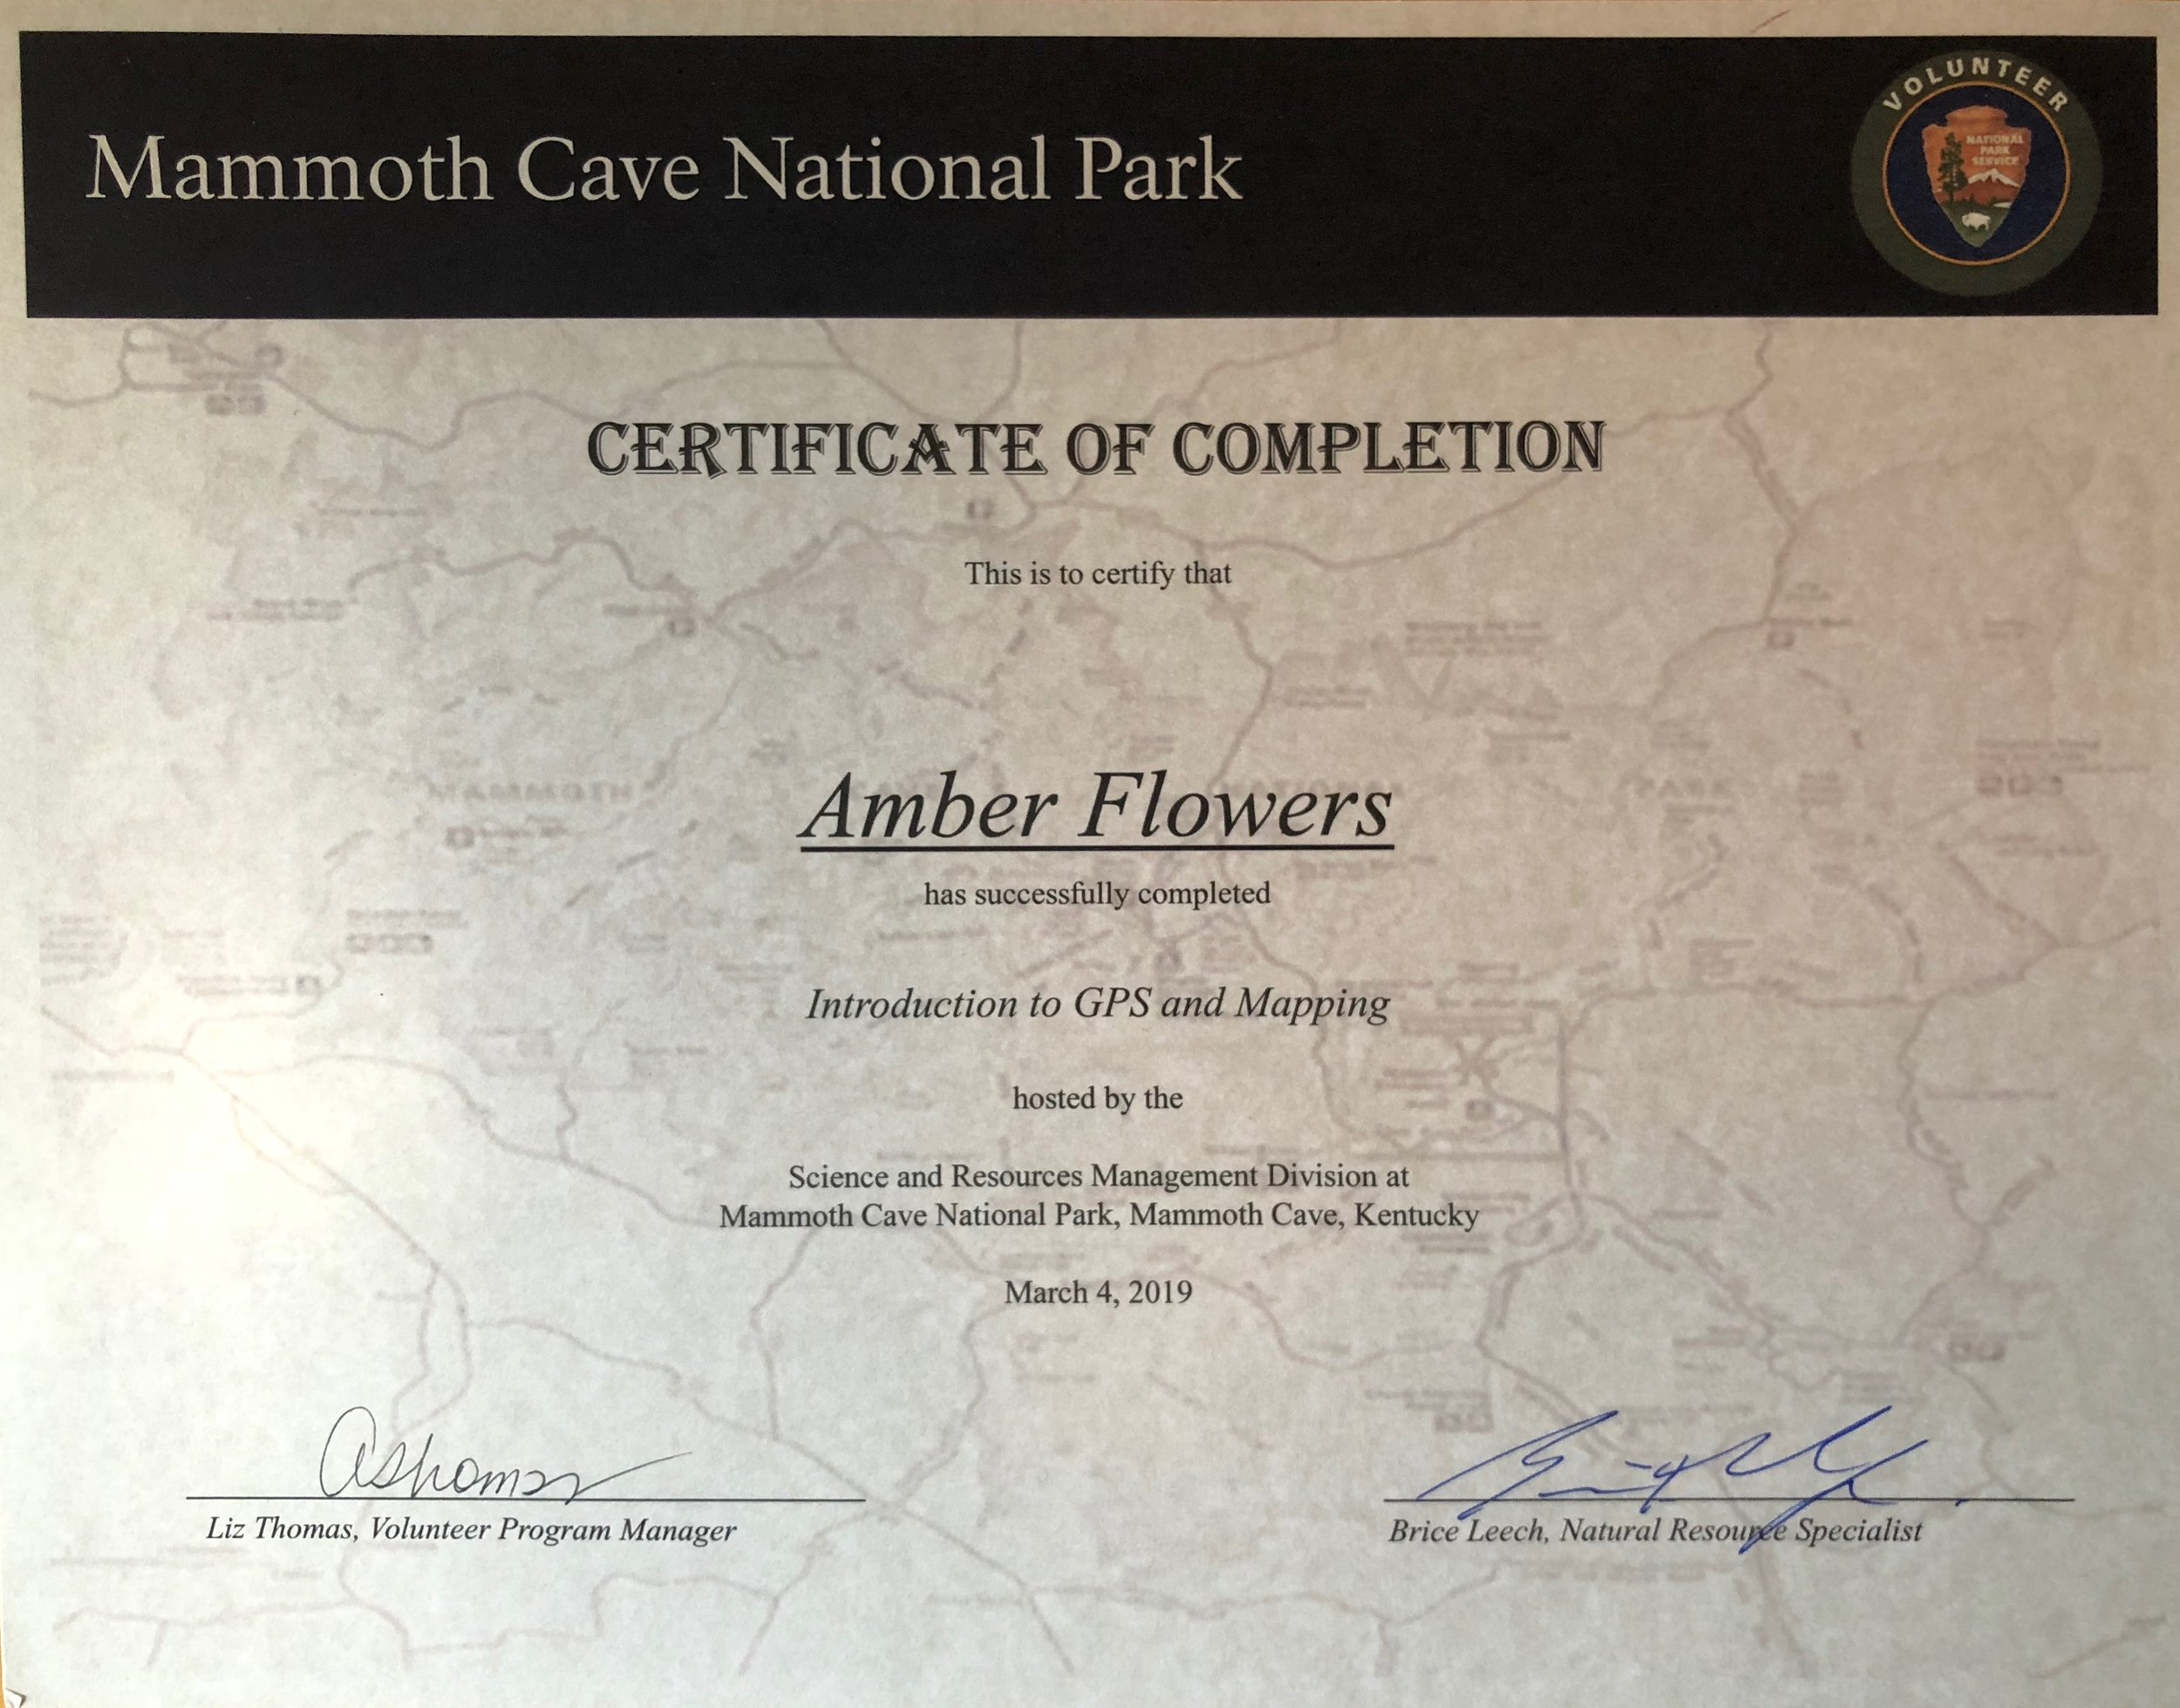 Introduction to GPS and Mapping  Mammoth Cave National Park.  March 4th, 2019